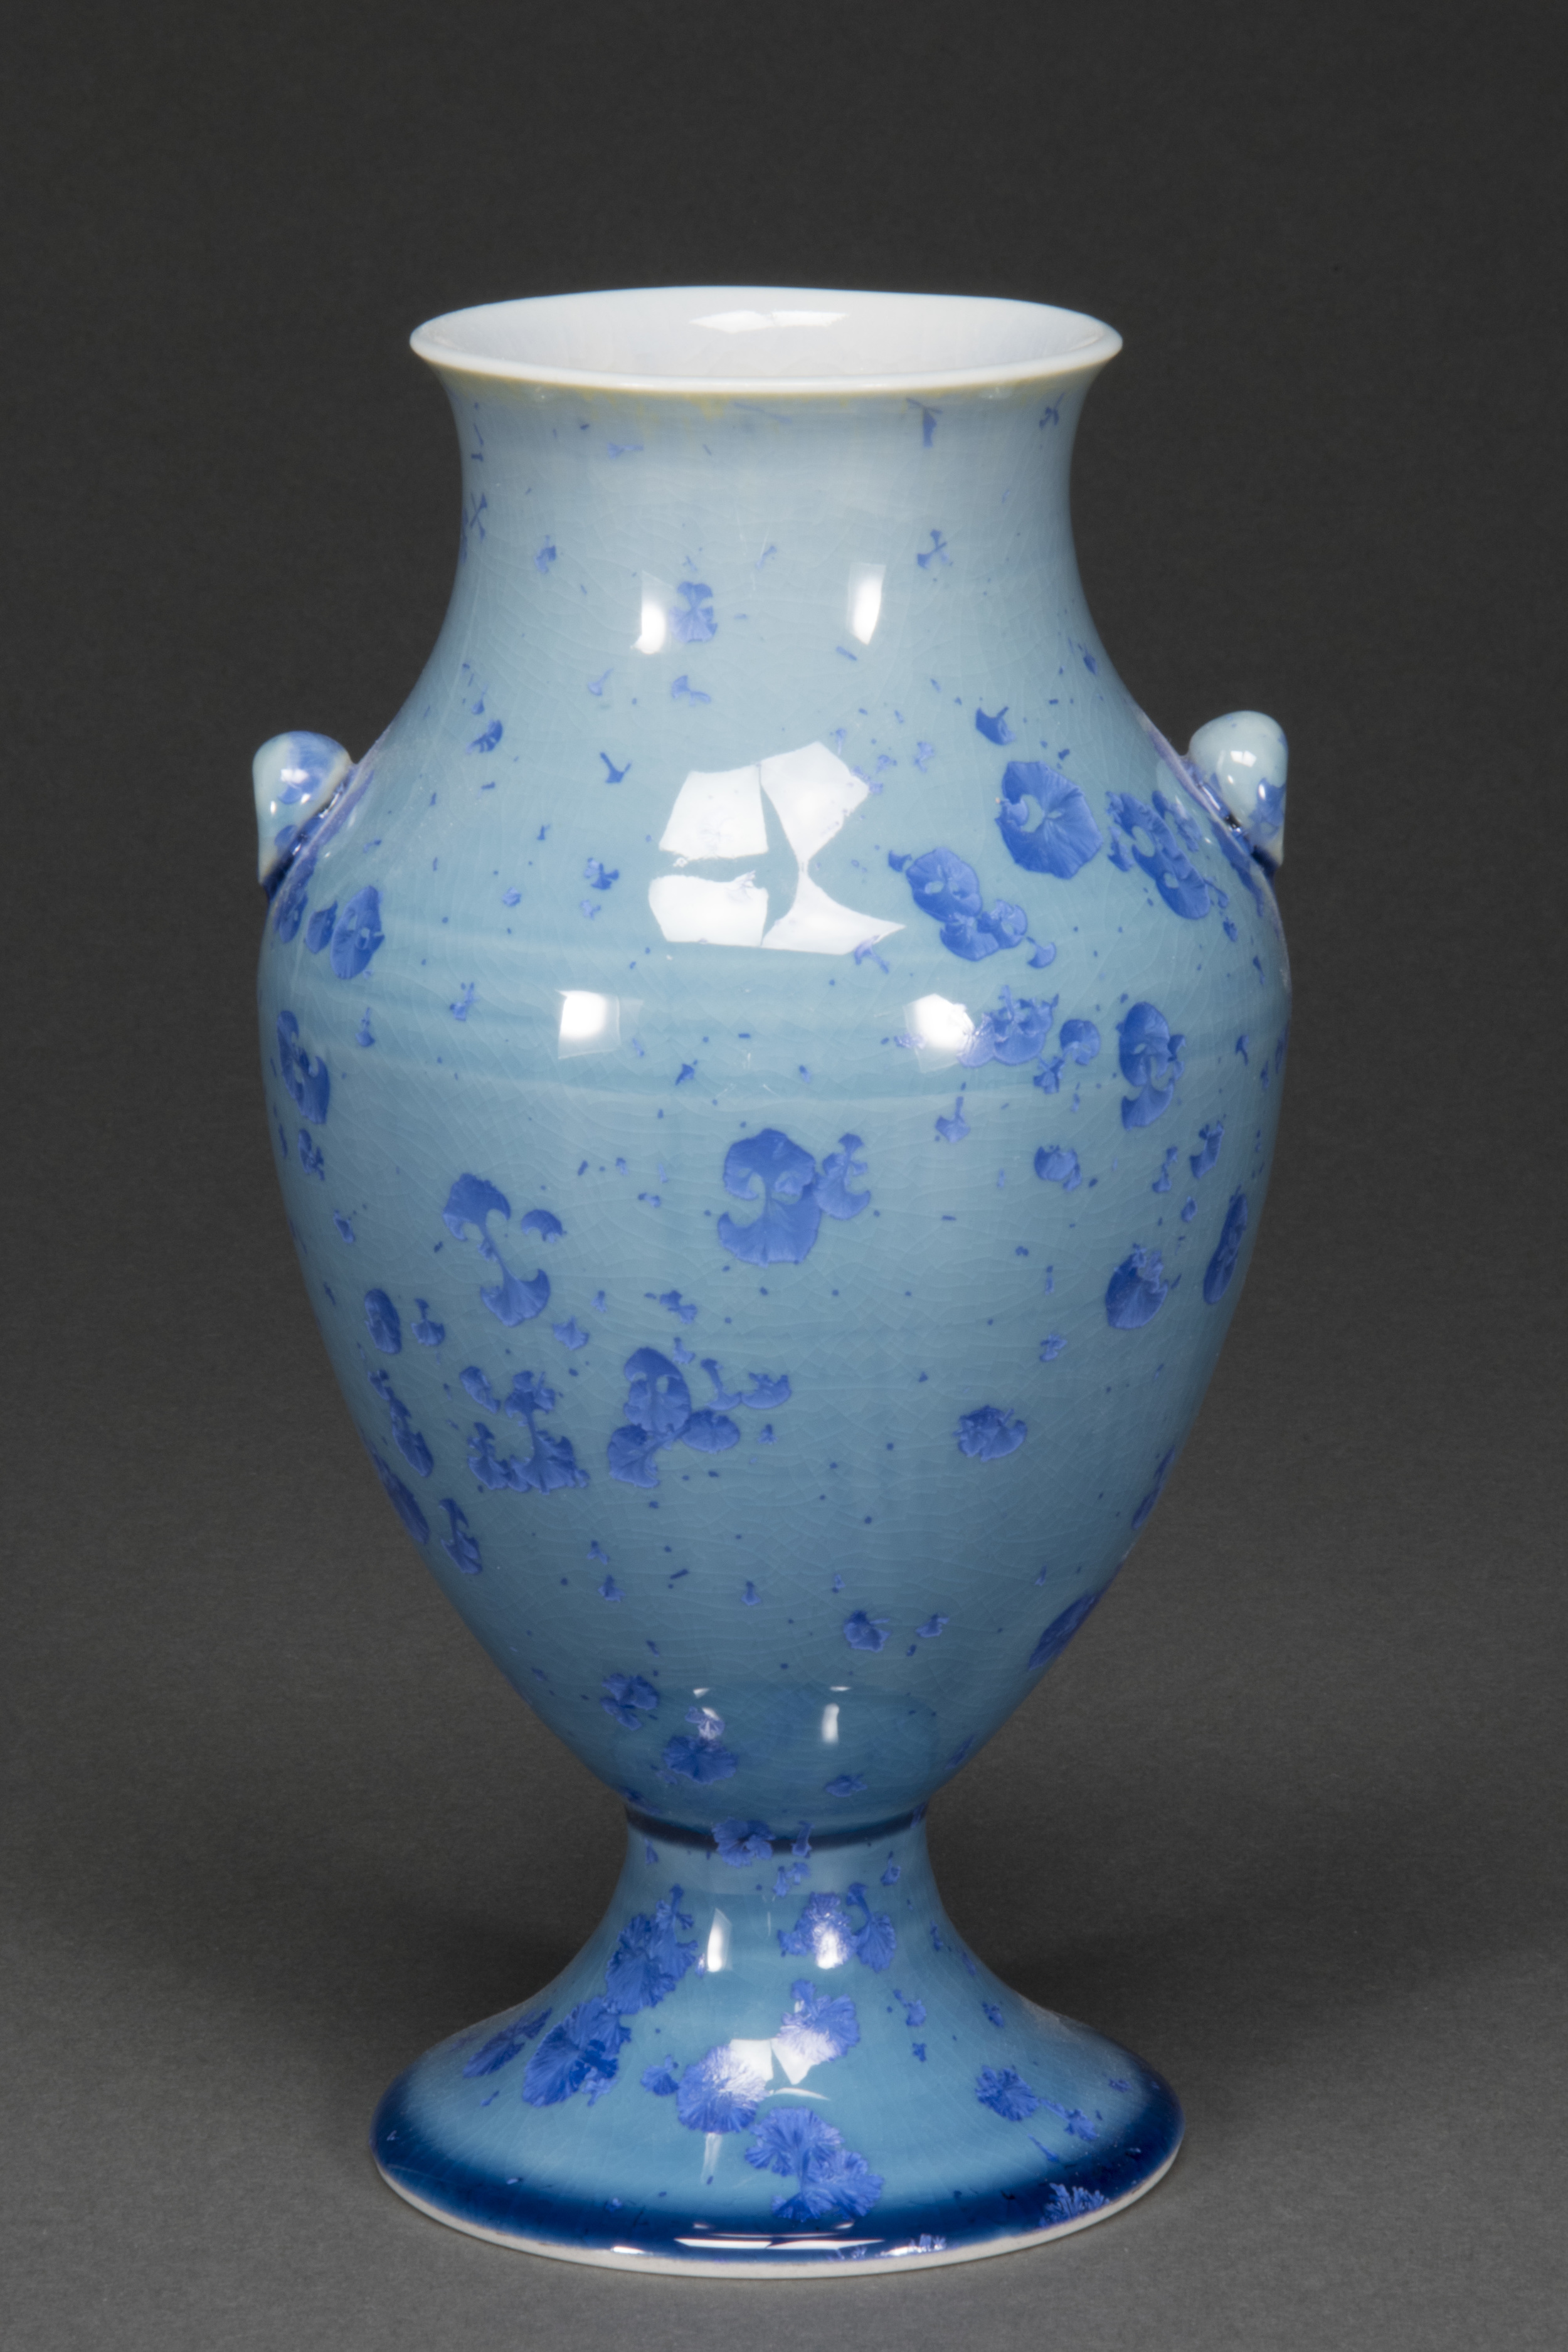 Crystalline Glazed Porcelain Vase